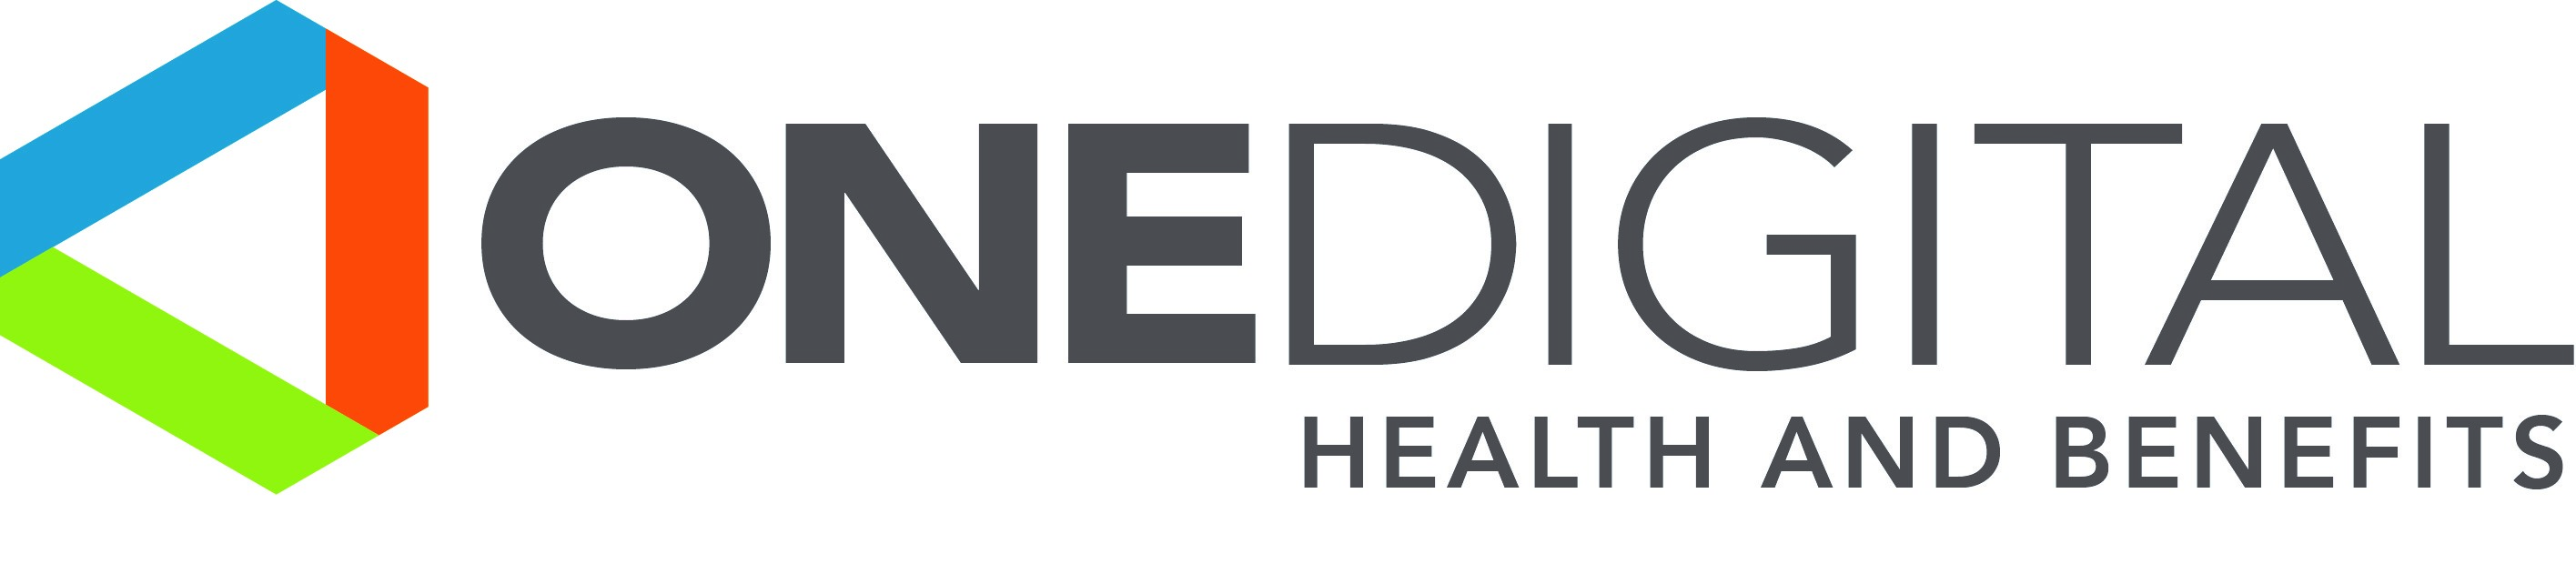 OneDigital Health and Benefits